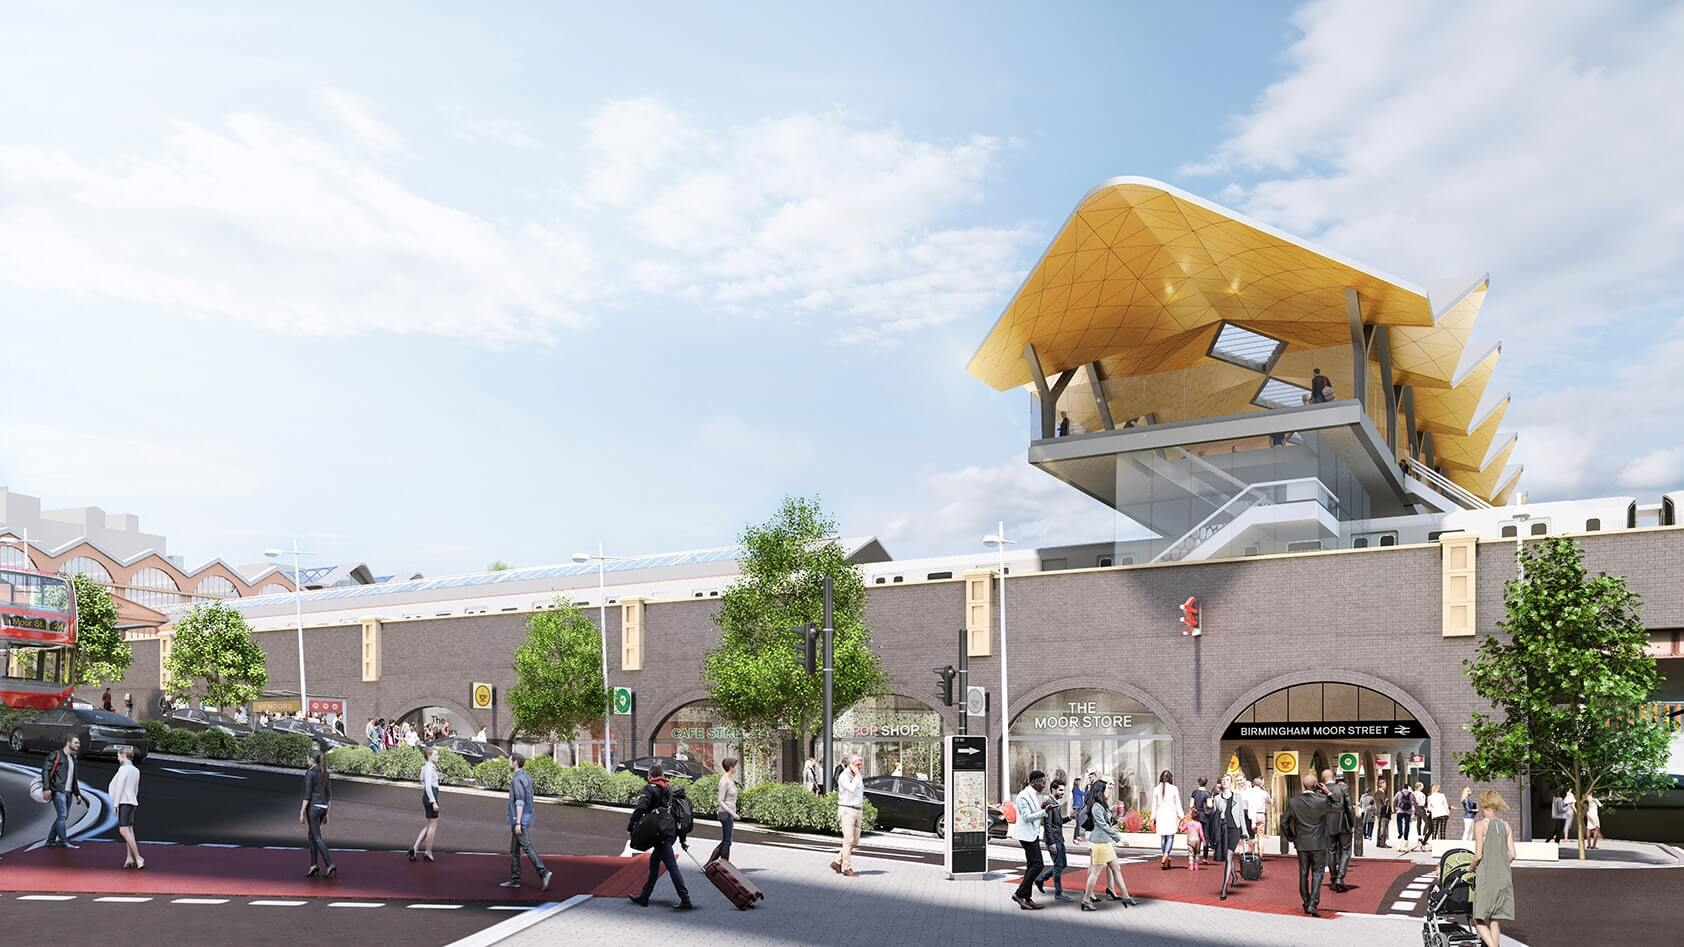 New Images Show Planned Transformation Of Birmingham Station